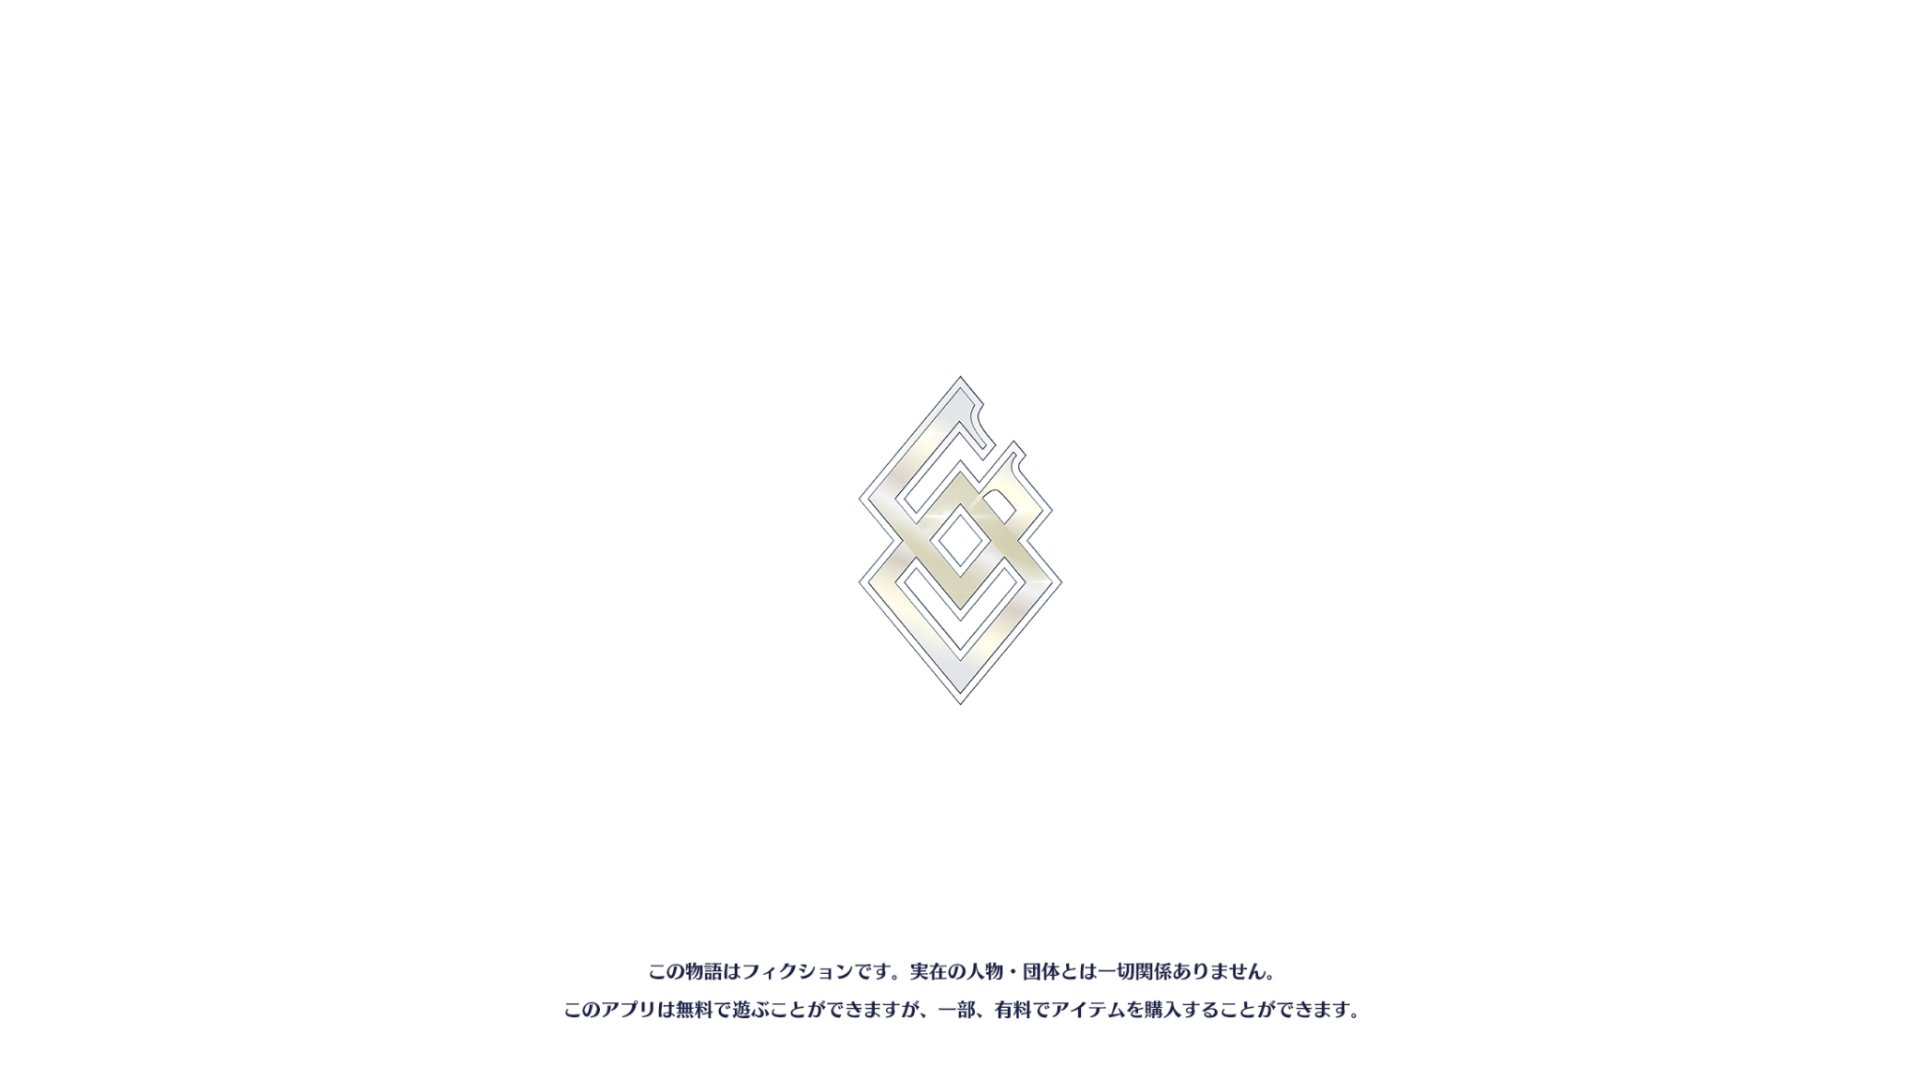 Til The Diamond Symbol In The Grand Order Logo Is Made Of A G And